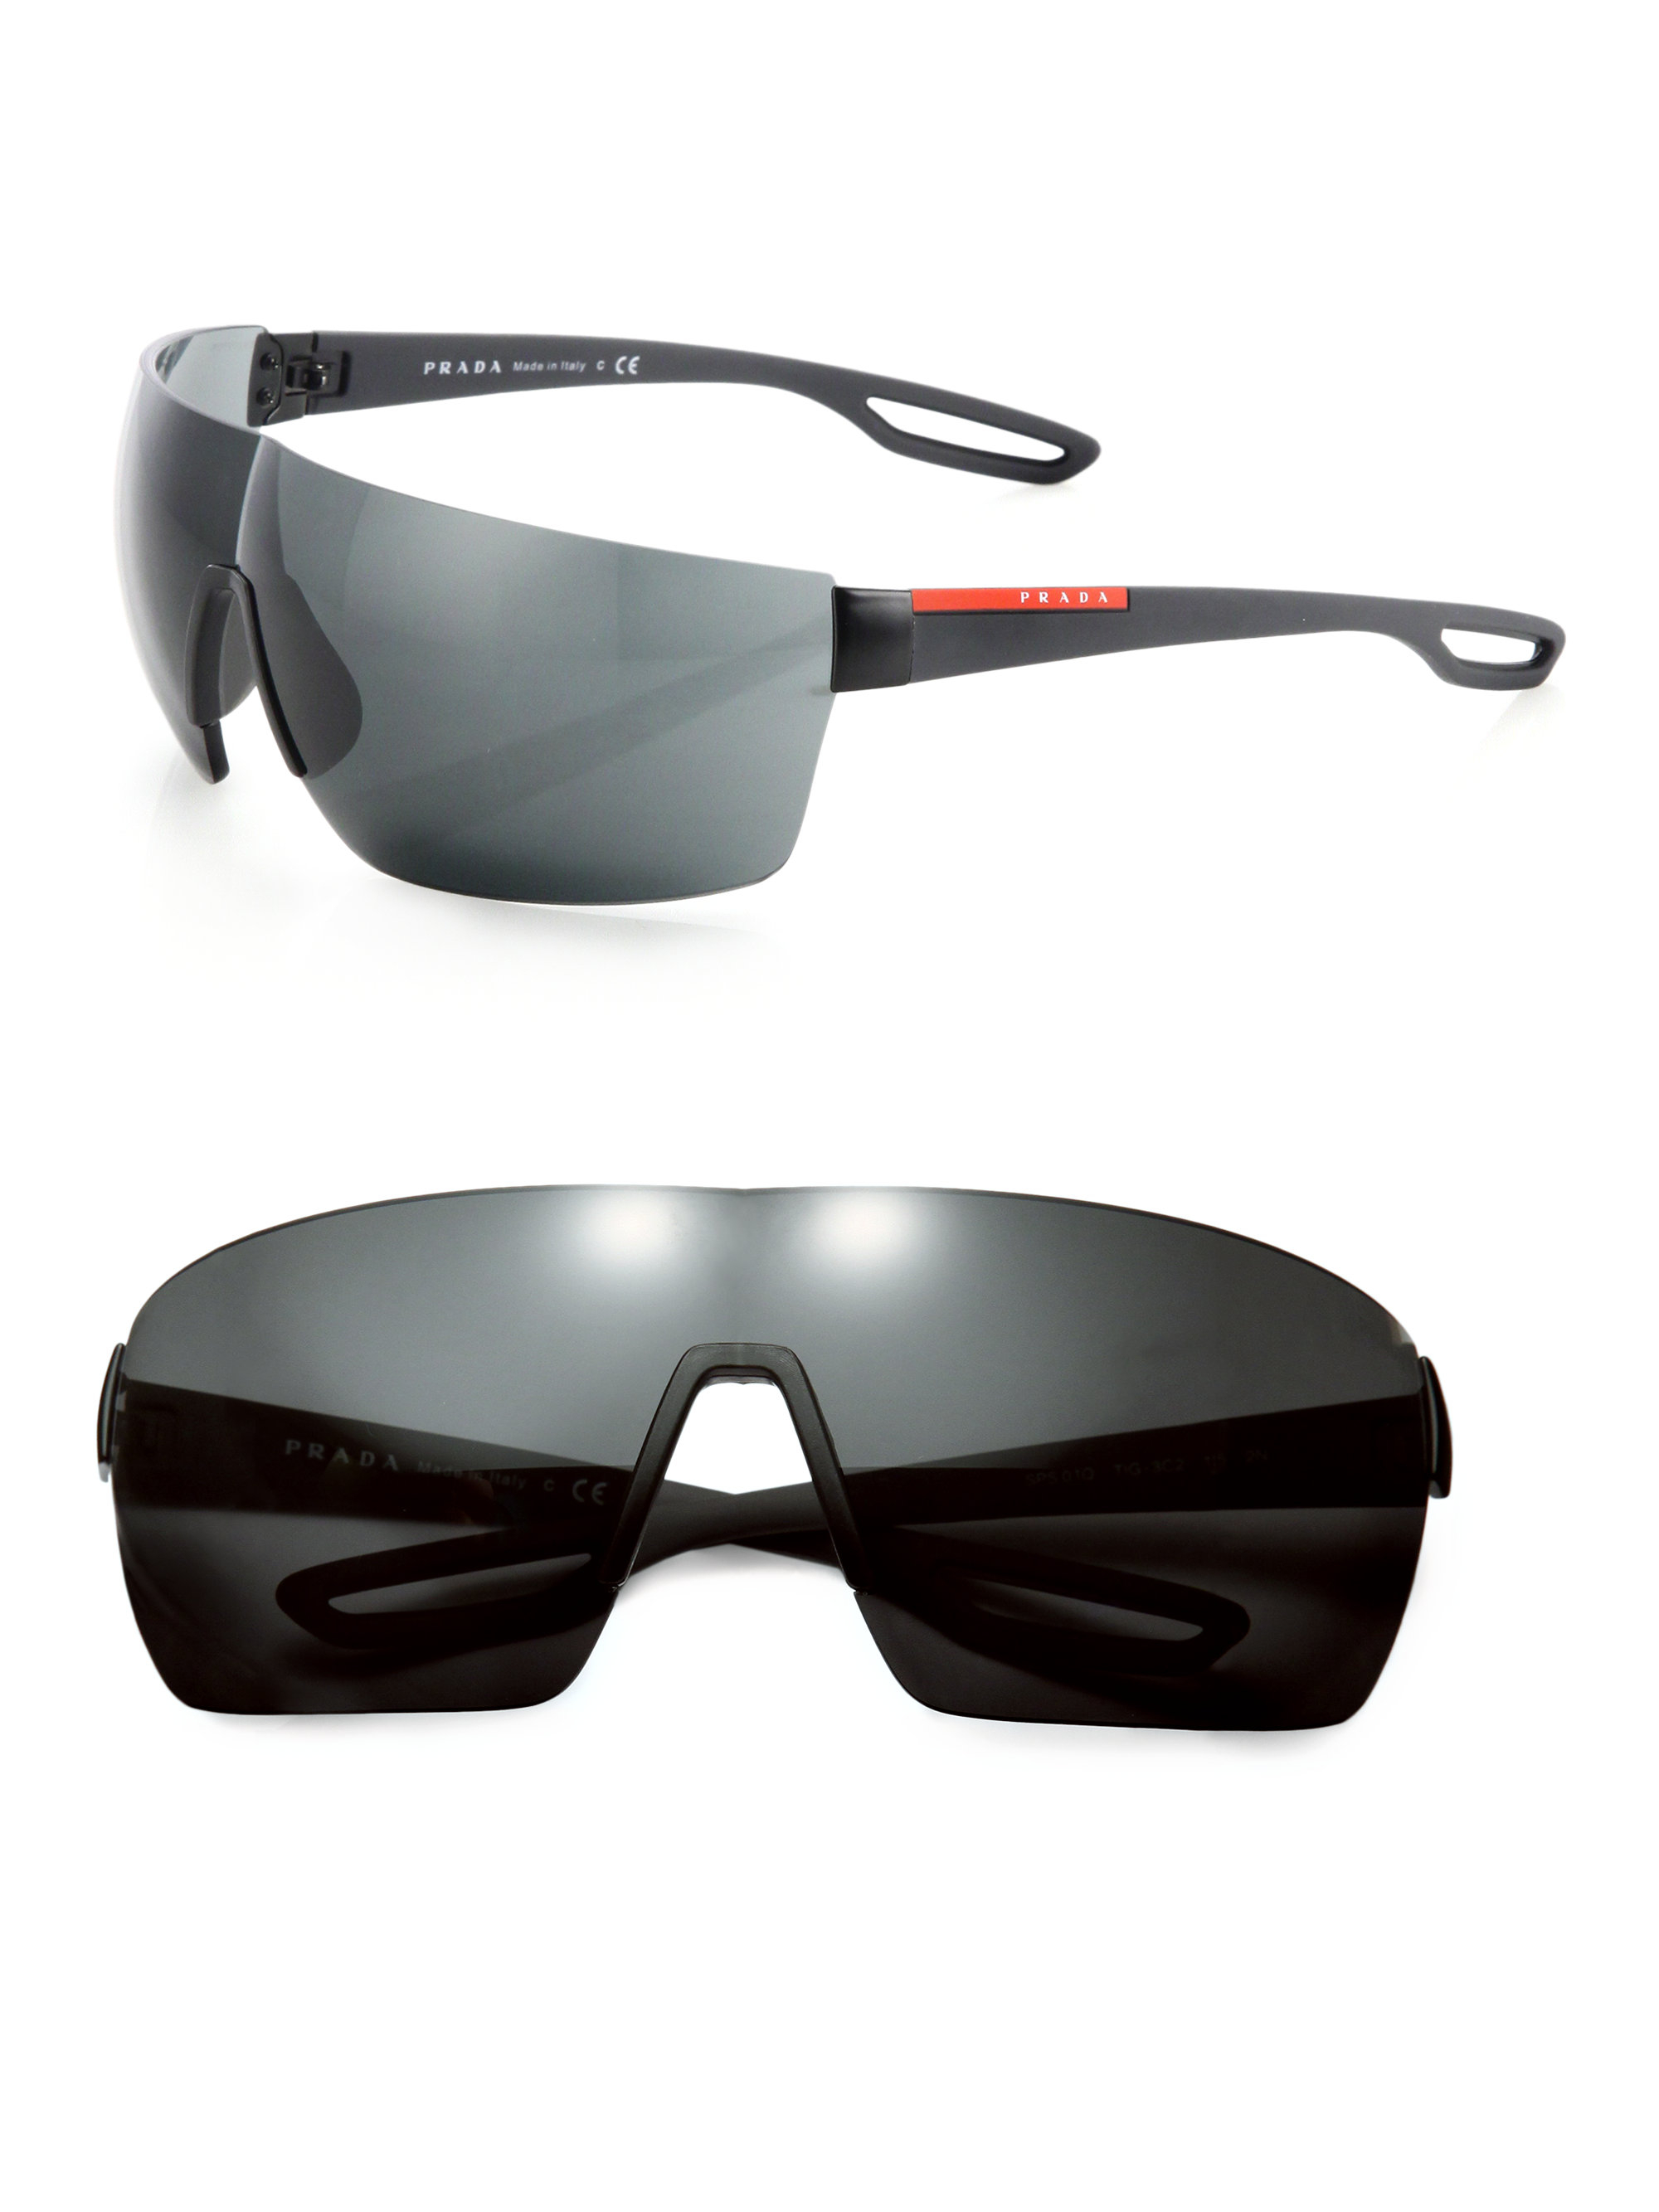 332840a2bcd ... australia lyst prada 38mm injected rimless rectangle sunglasses in black  for men 8cb93 69613 ...